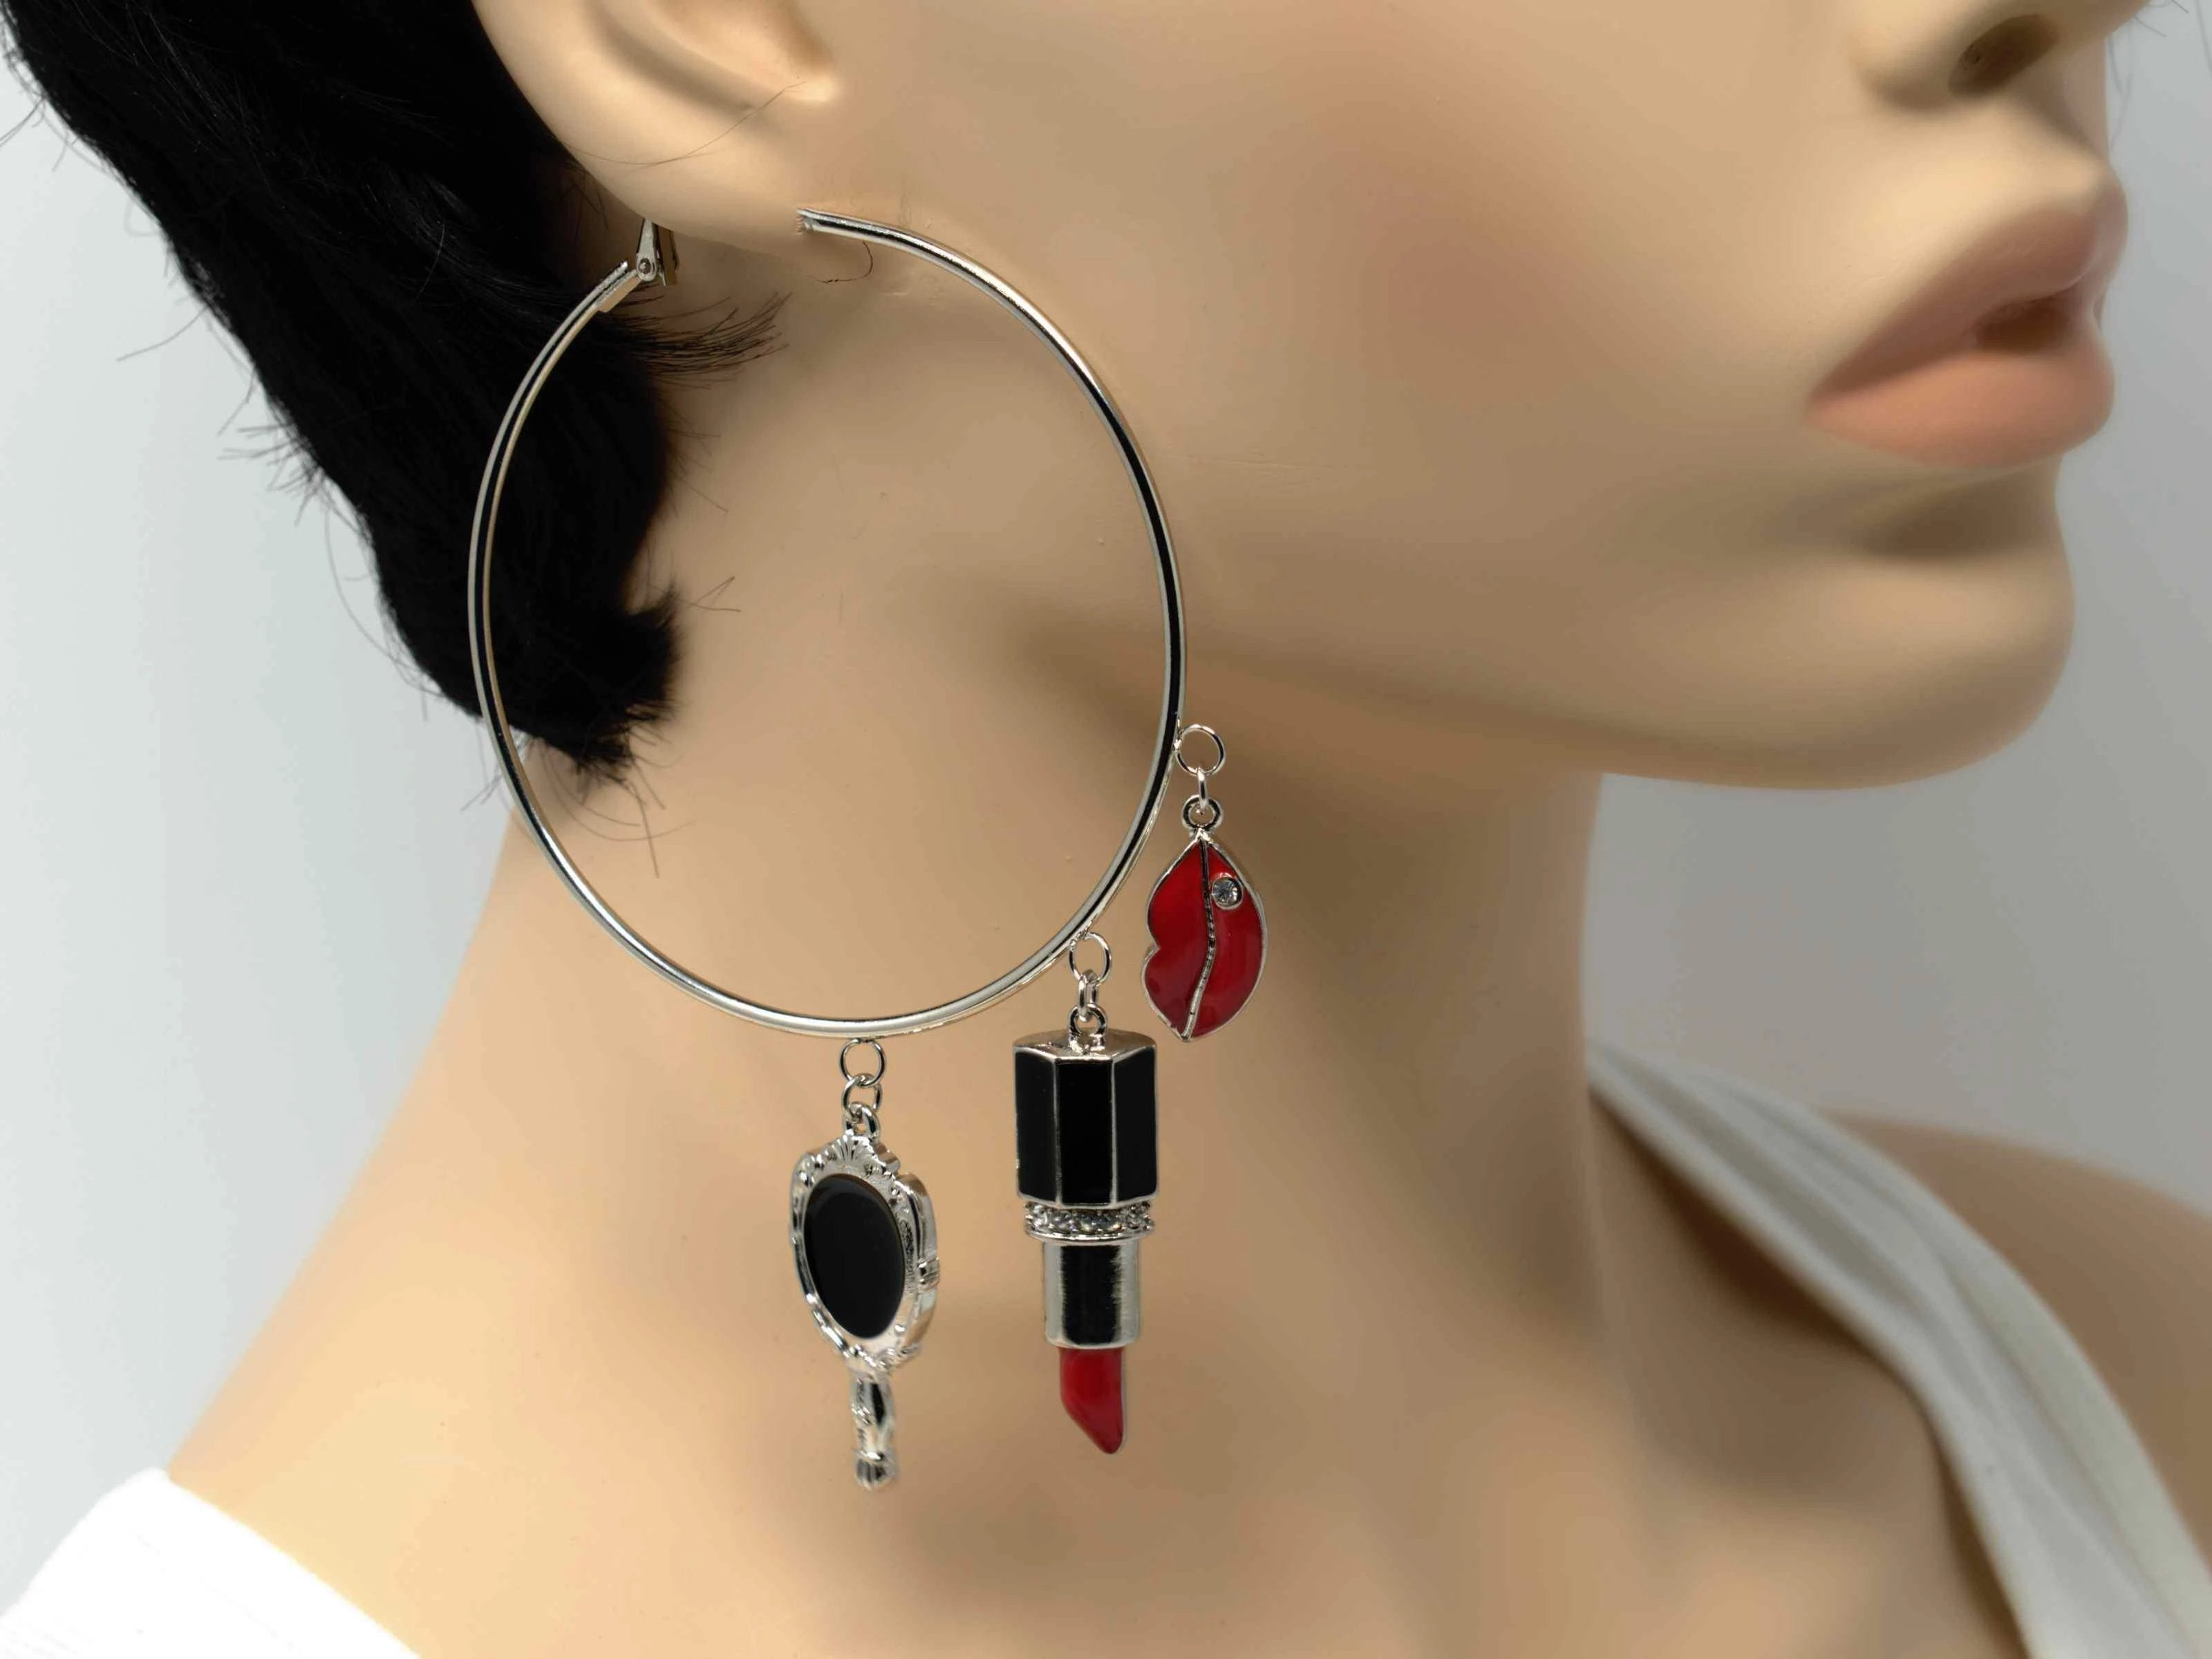 An eye-catching silver hoop earring with makeup charms.